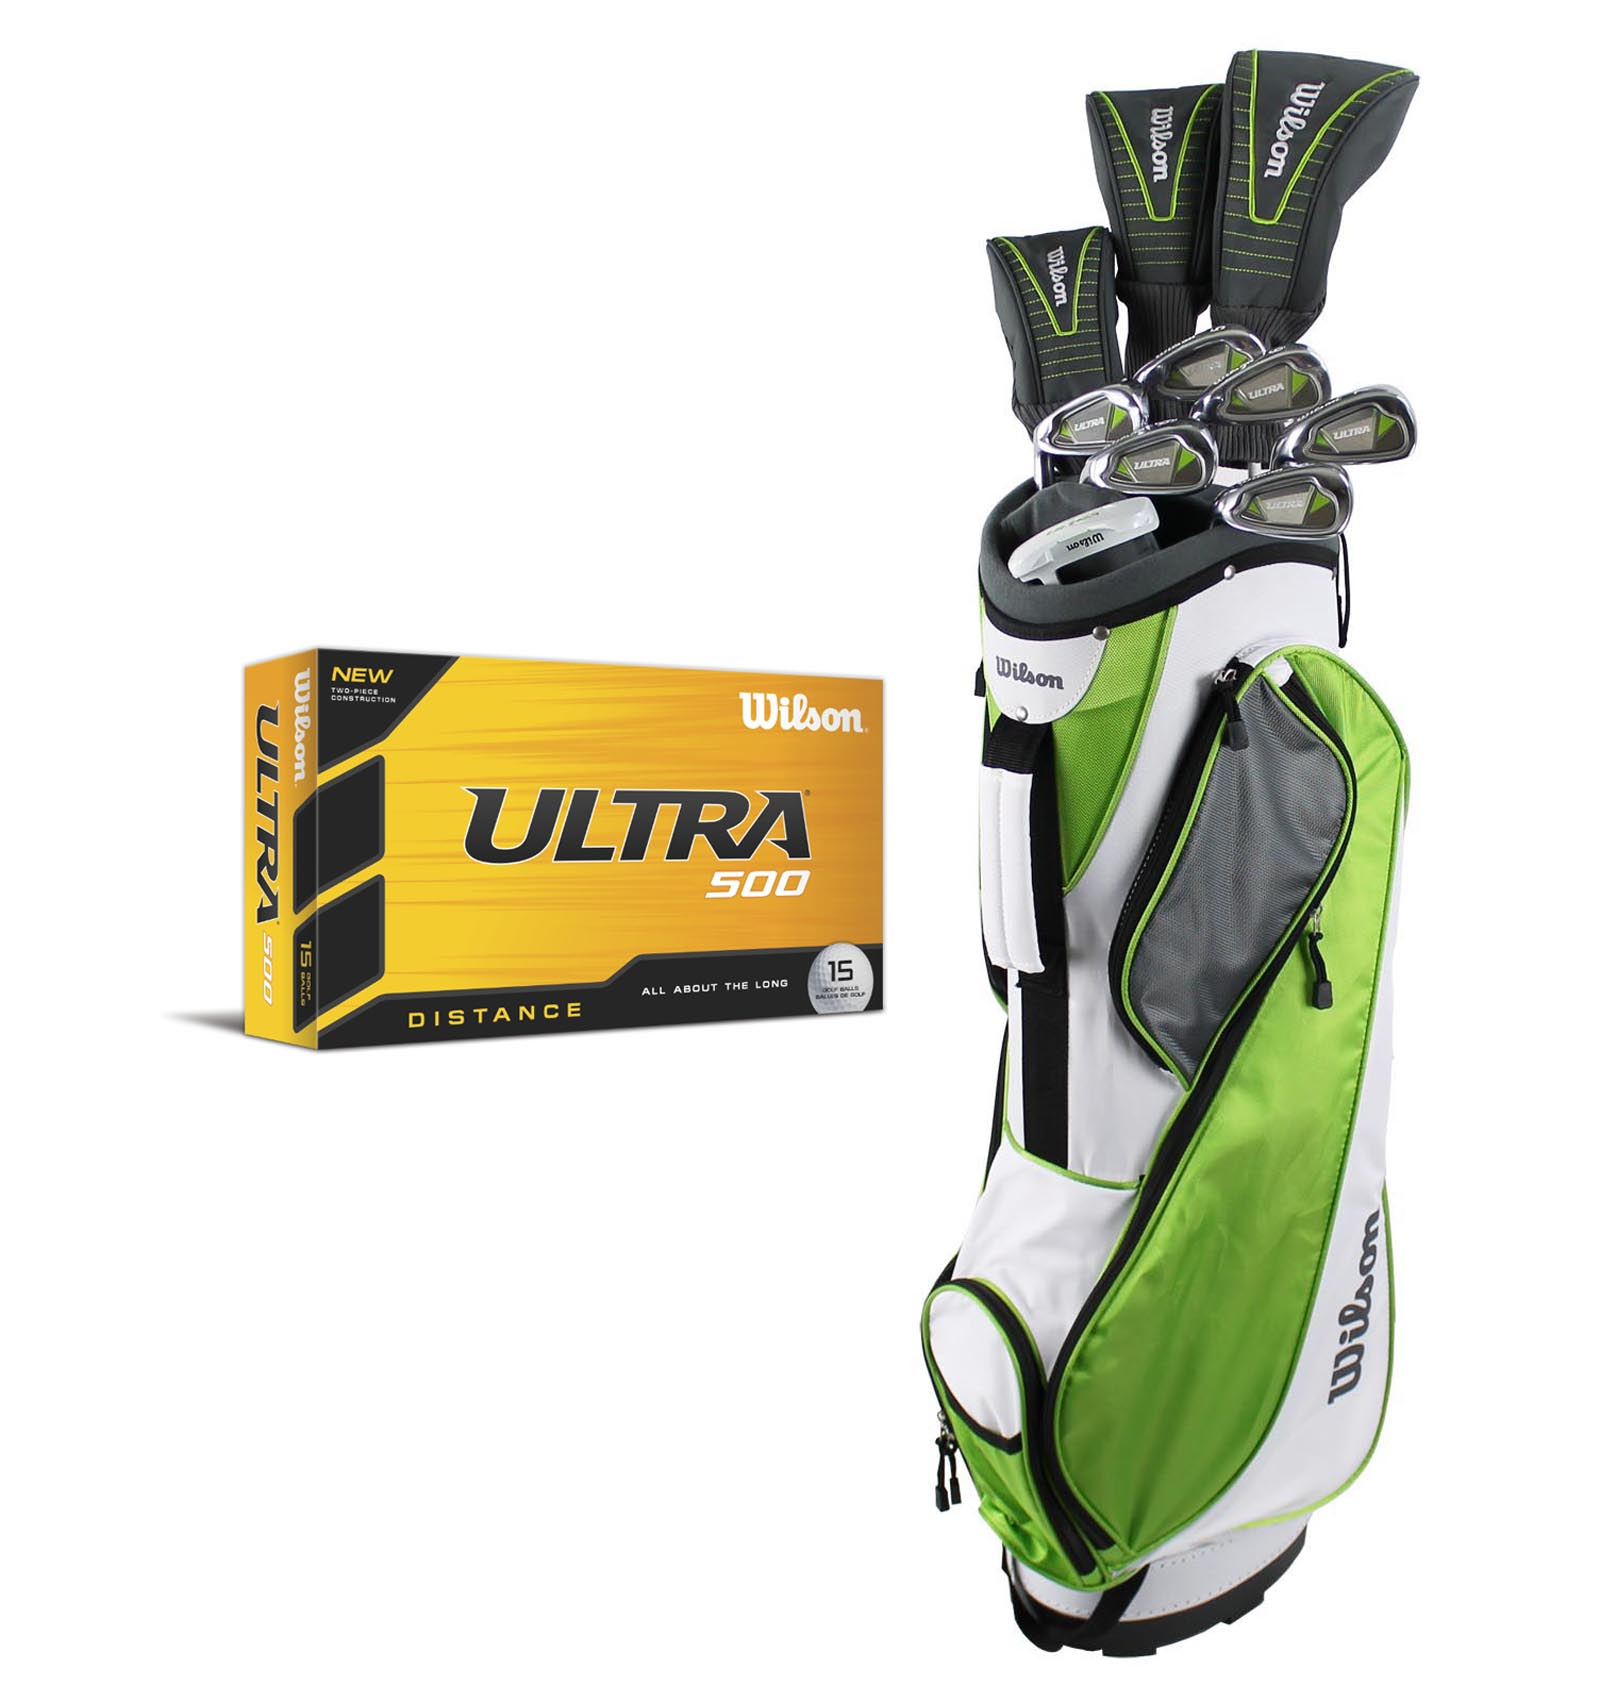 WILSON ULTRA Womens Ladies Left Handed Complete Golf Club Set w/ Bag + 15 Balls